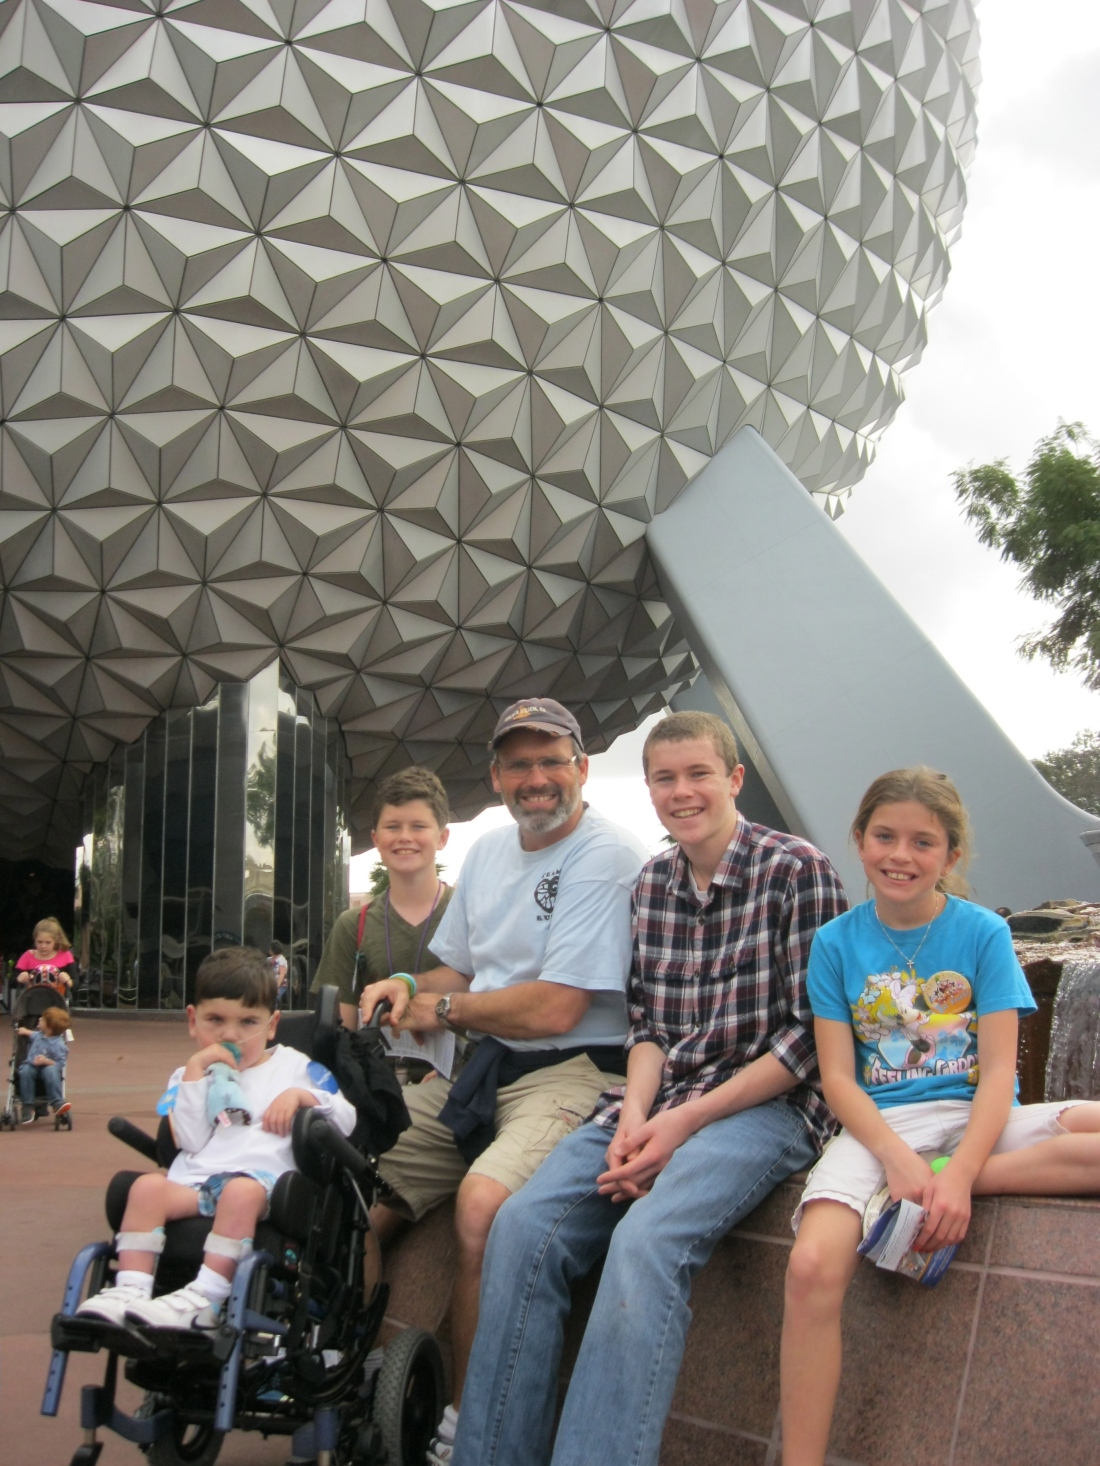 Then, it's off to Epcot!